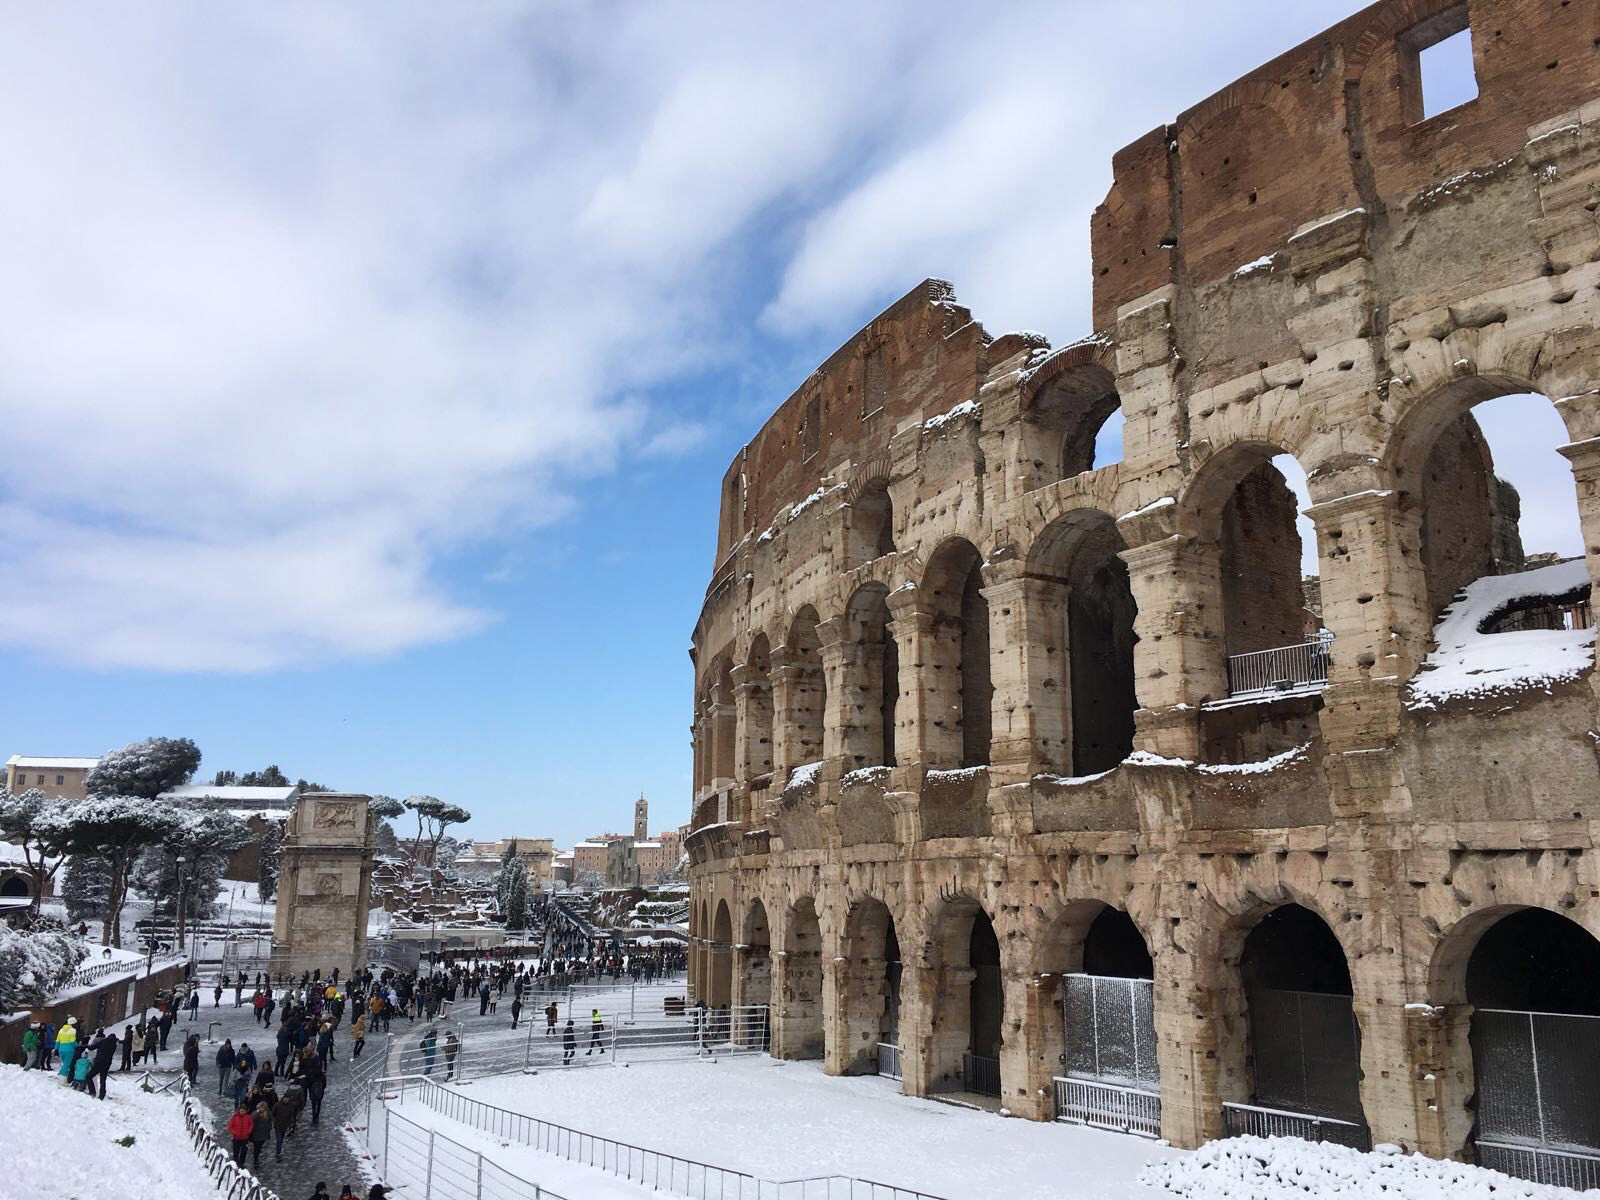 Snow settled around the Colosseum in Rome (Carla Judge/PA Wire)